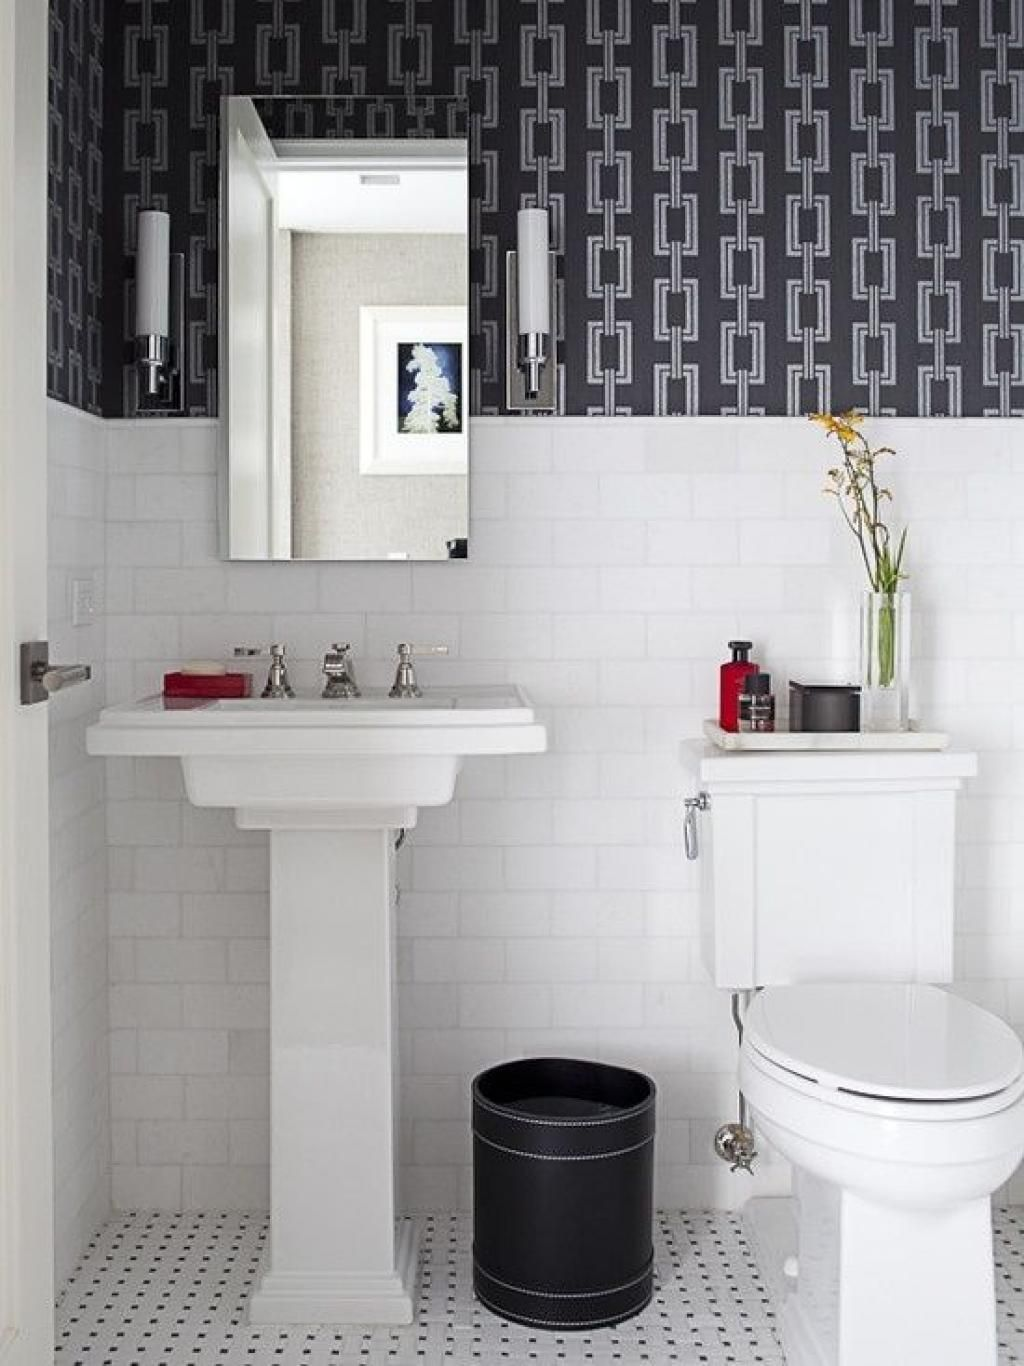 Images Photos Creative Black and White Small Bathroom with Chains Bathroom Wallpaper Ideas u Home Inspiring